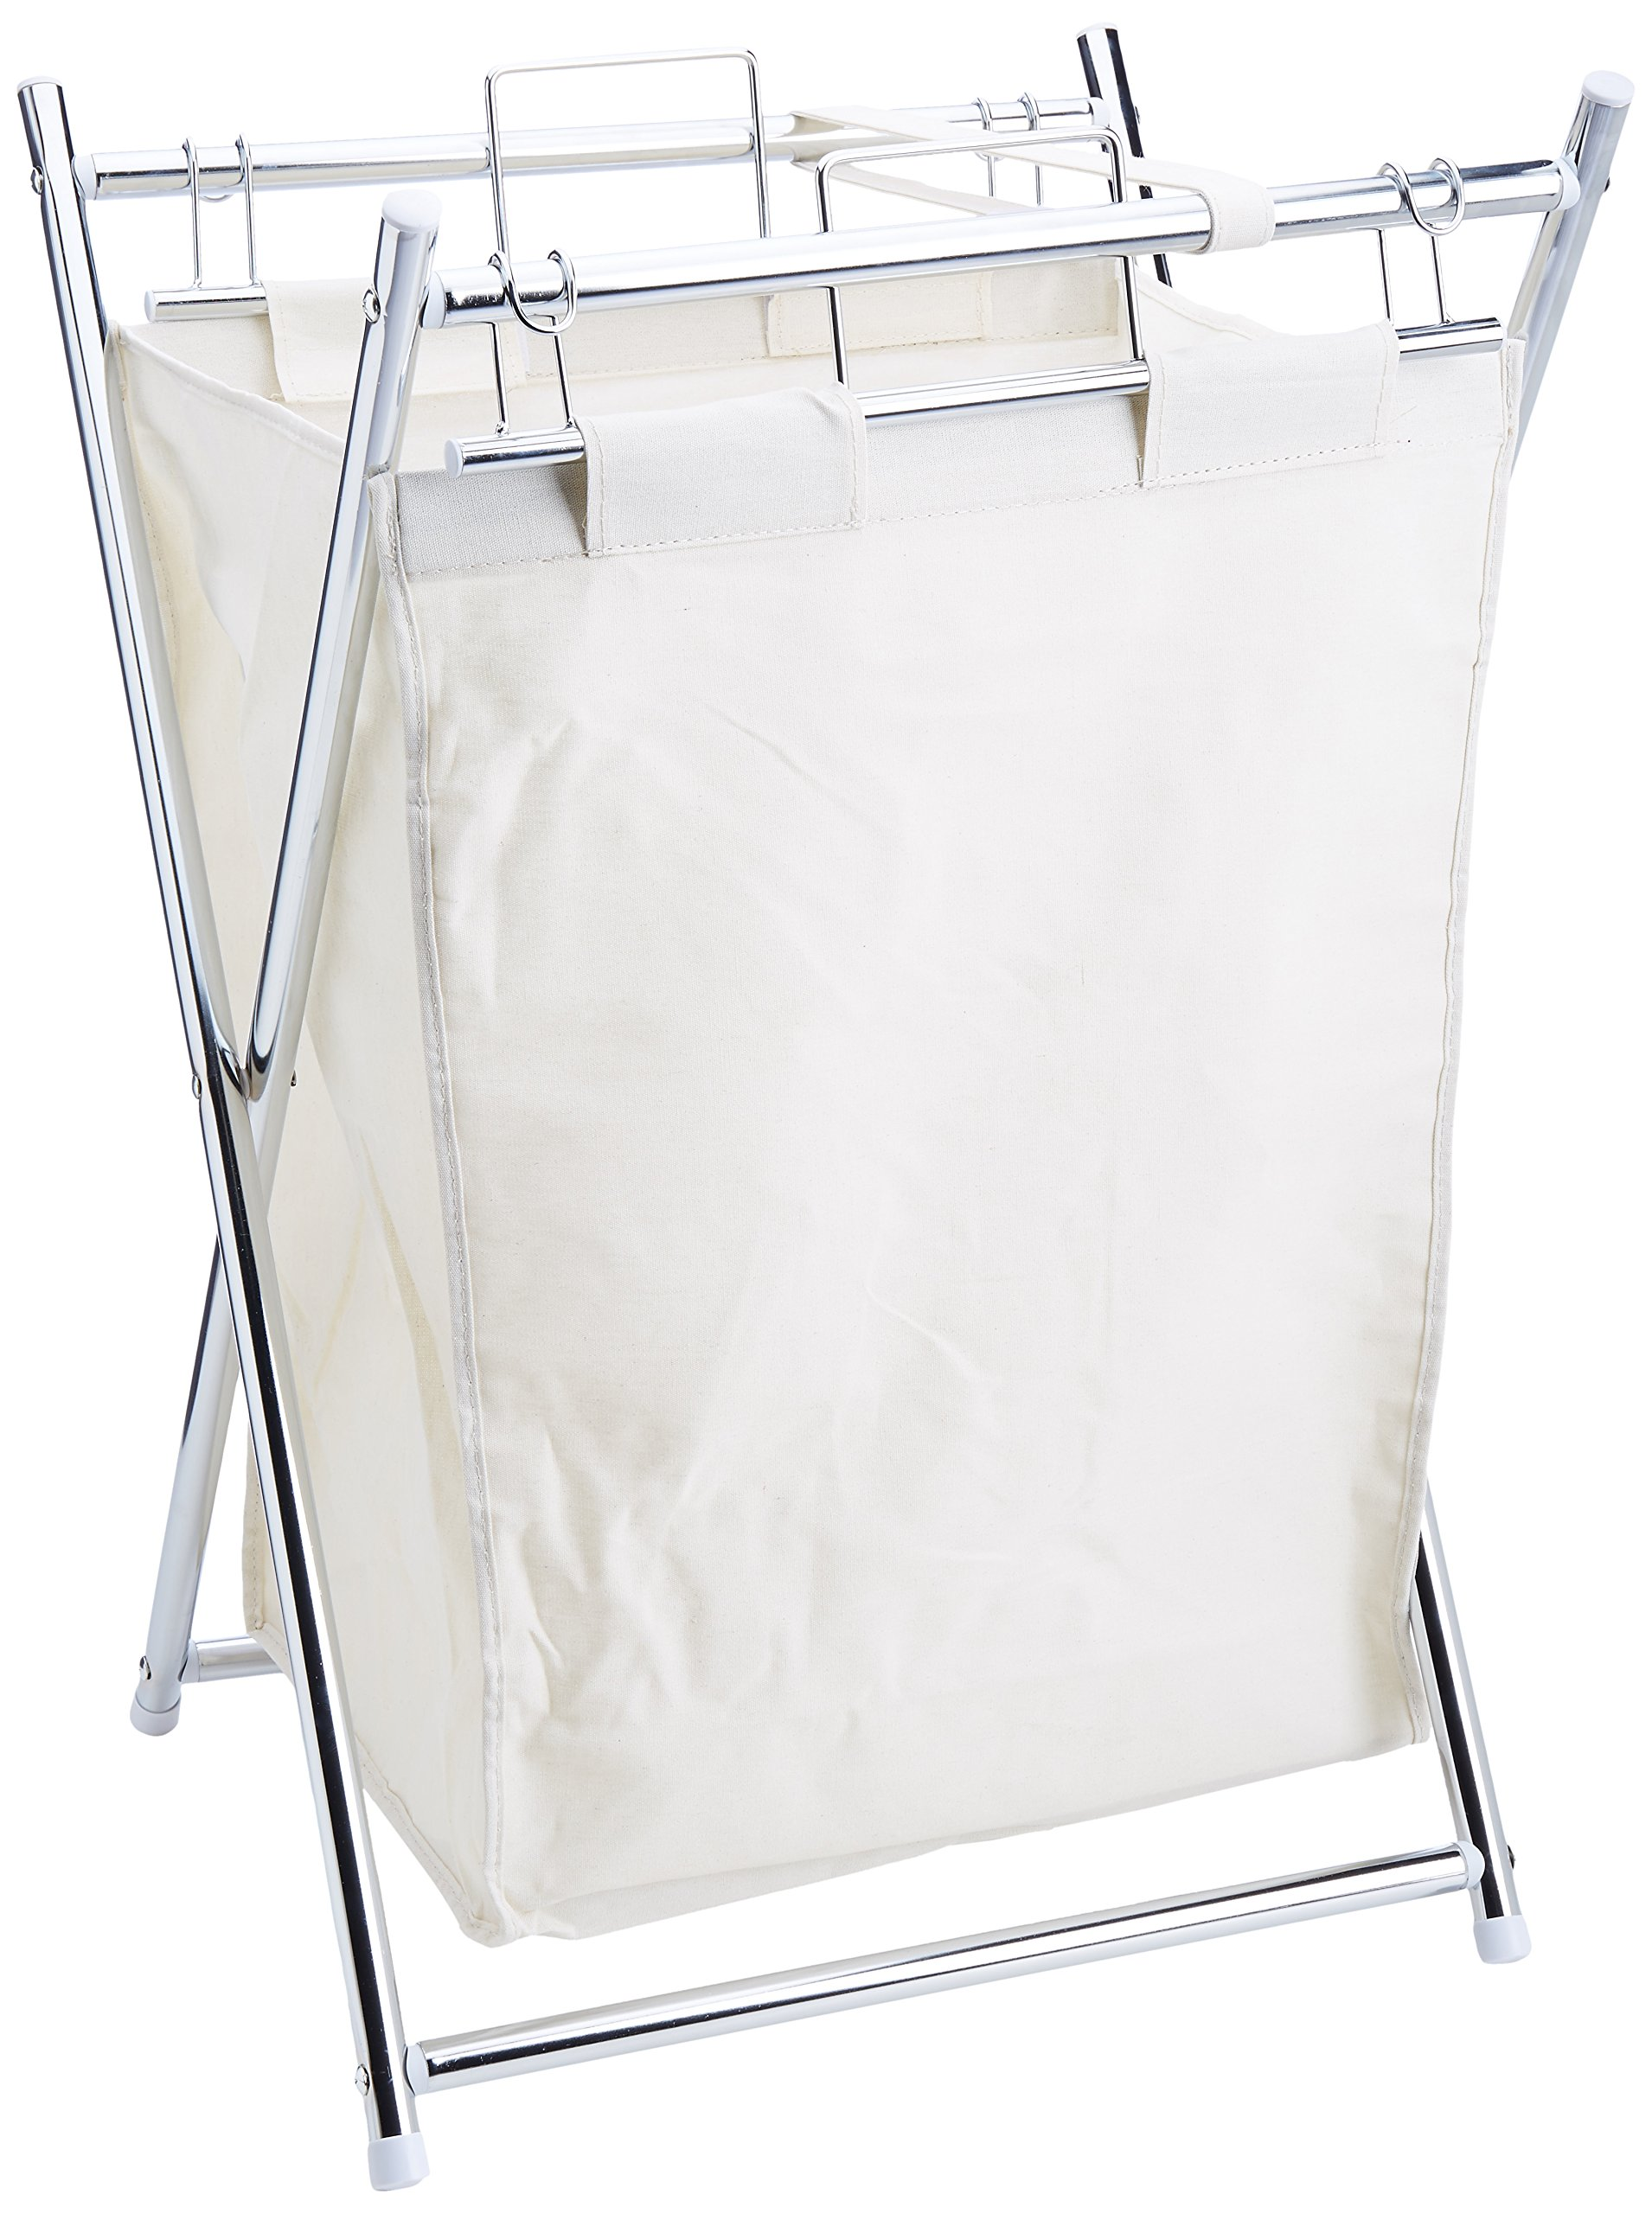 Organize It All Collapsible Chrome Laundry Hamper with Removable Canvas Liner by Organize It All